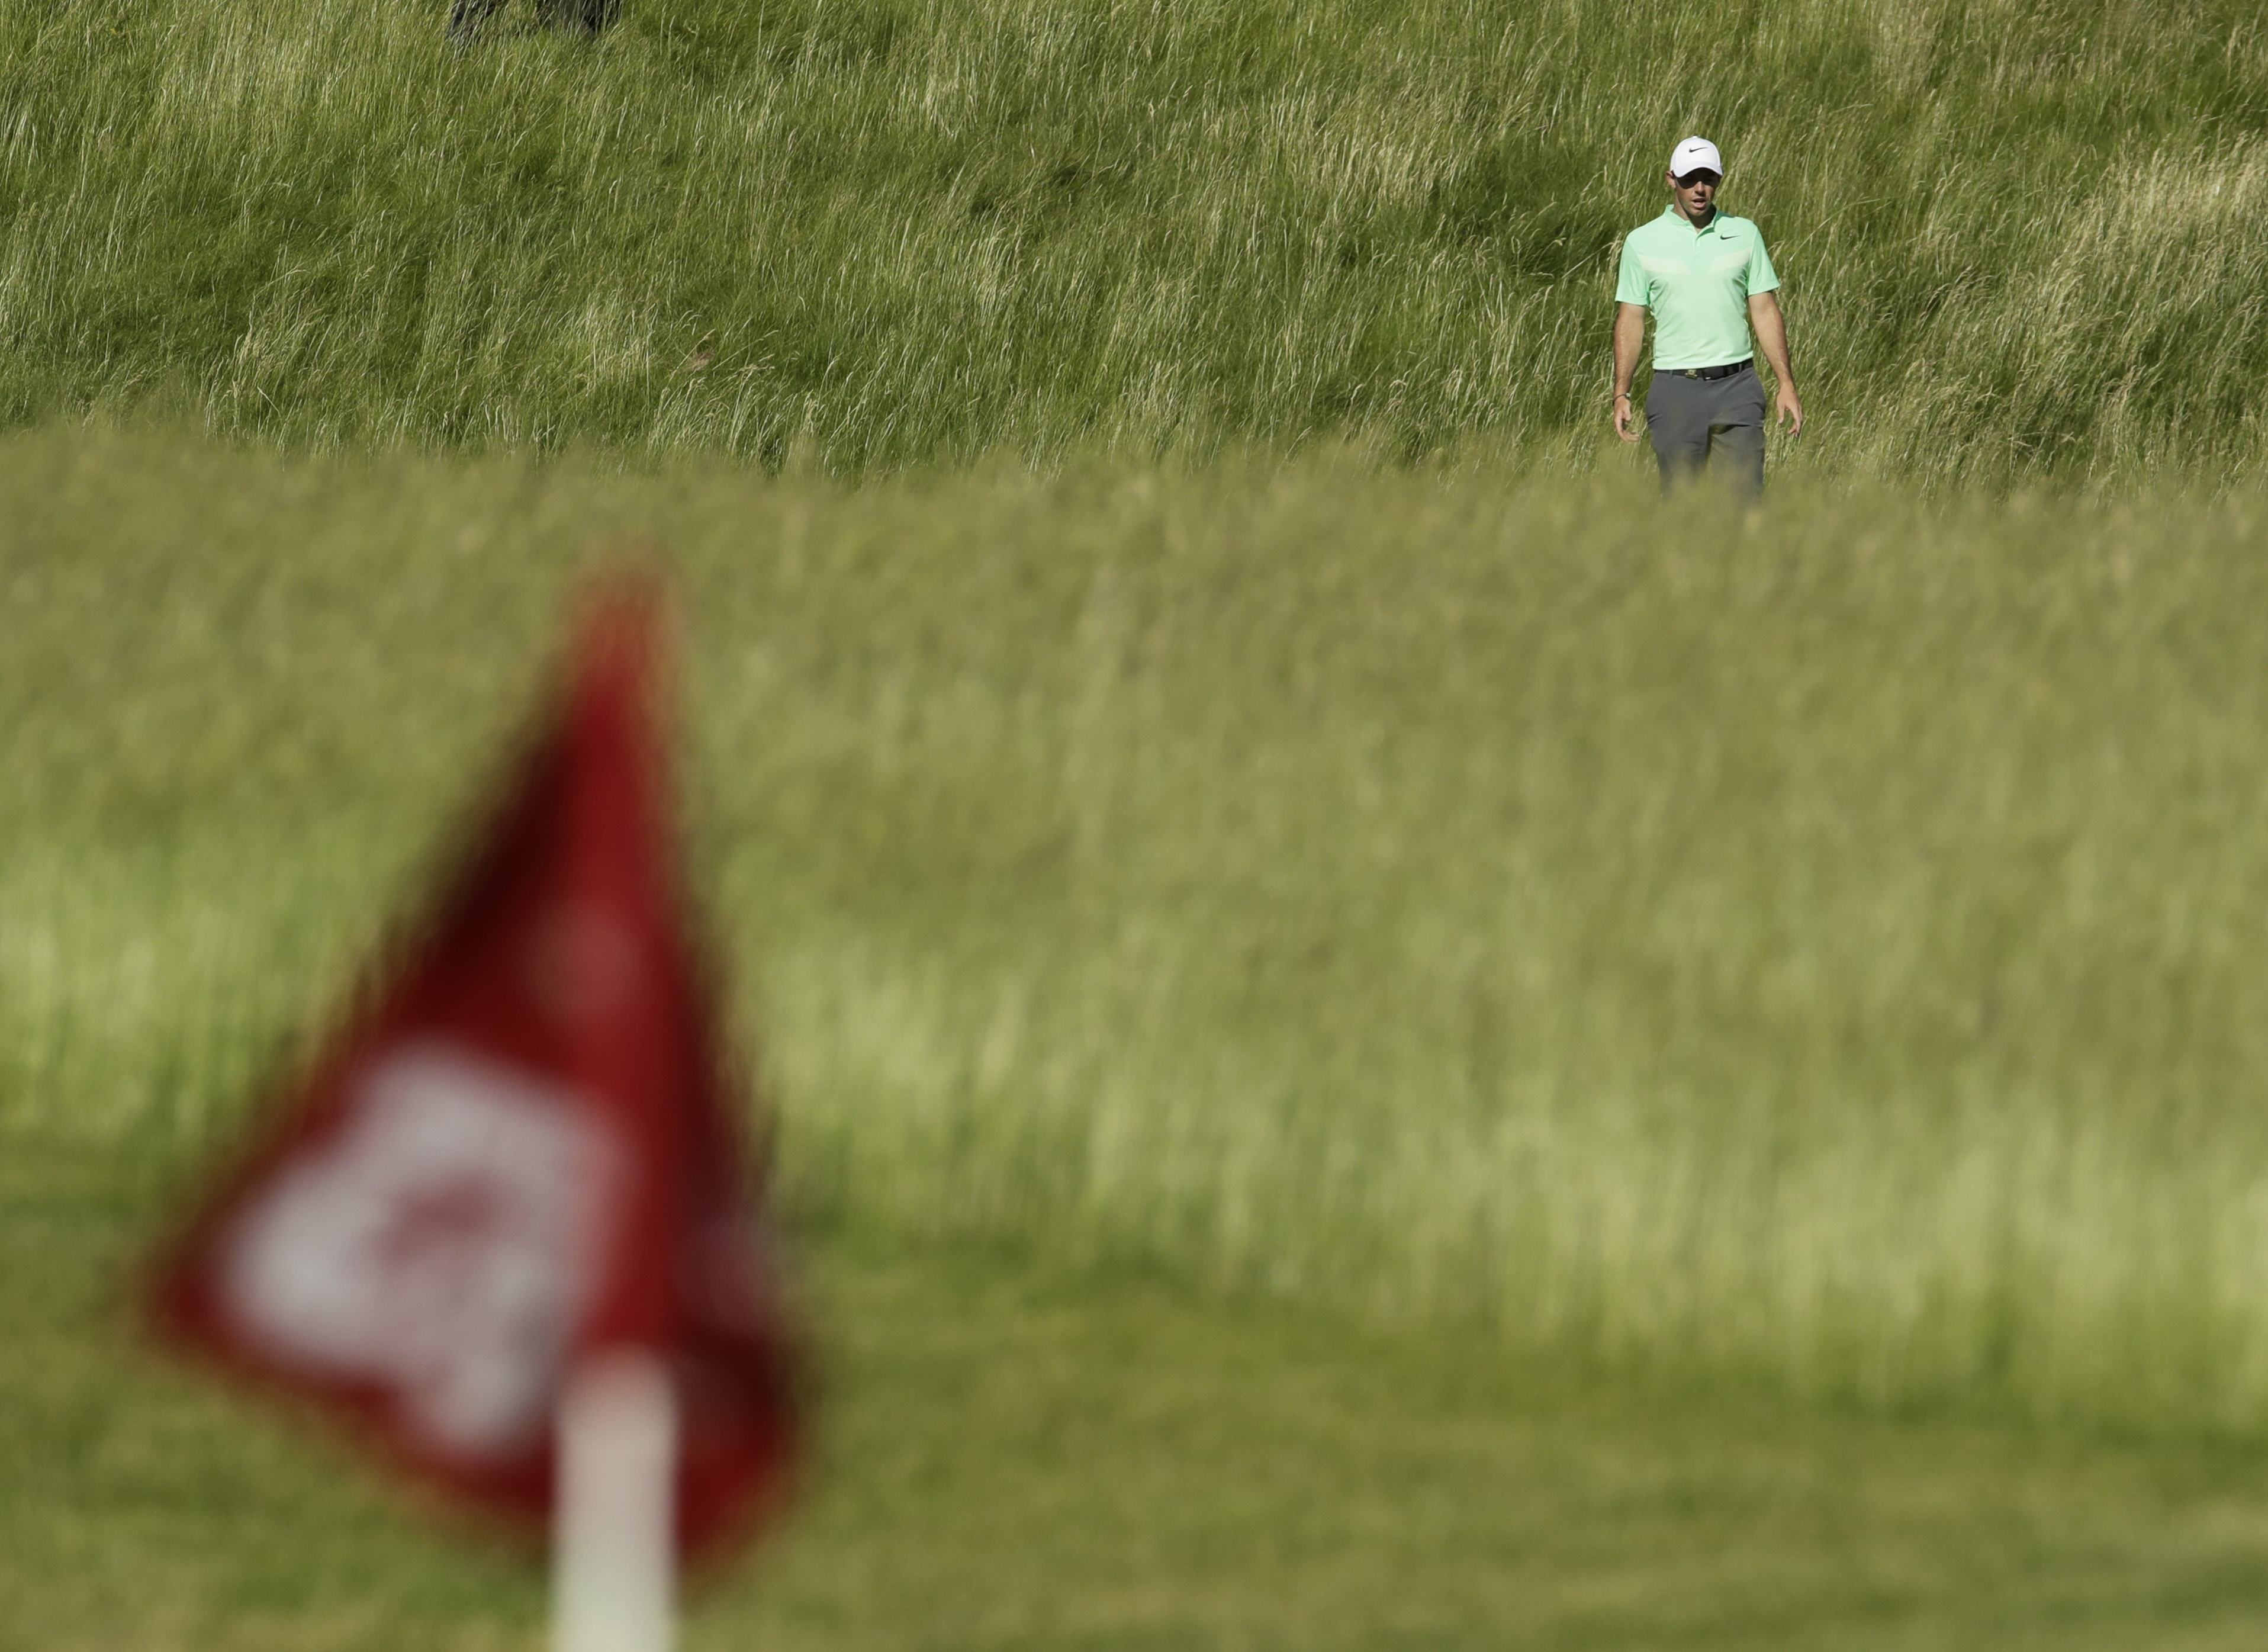 Rory Mcilroy, of Ireland, makes his way to the 12th hole during the first round of the U.S. Open golf tournament Thursday, June 15, 2017, at Erin Hills in Erin, Wis. (AP Photo/Charlie Riedel)